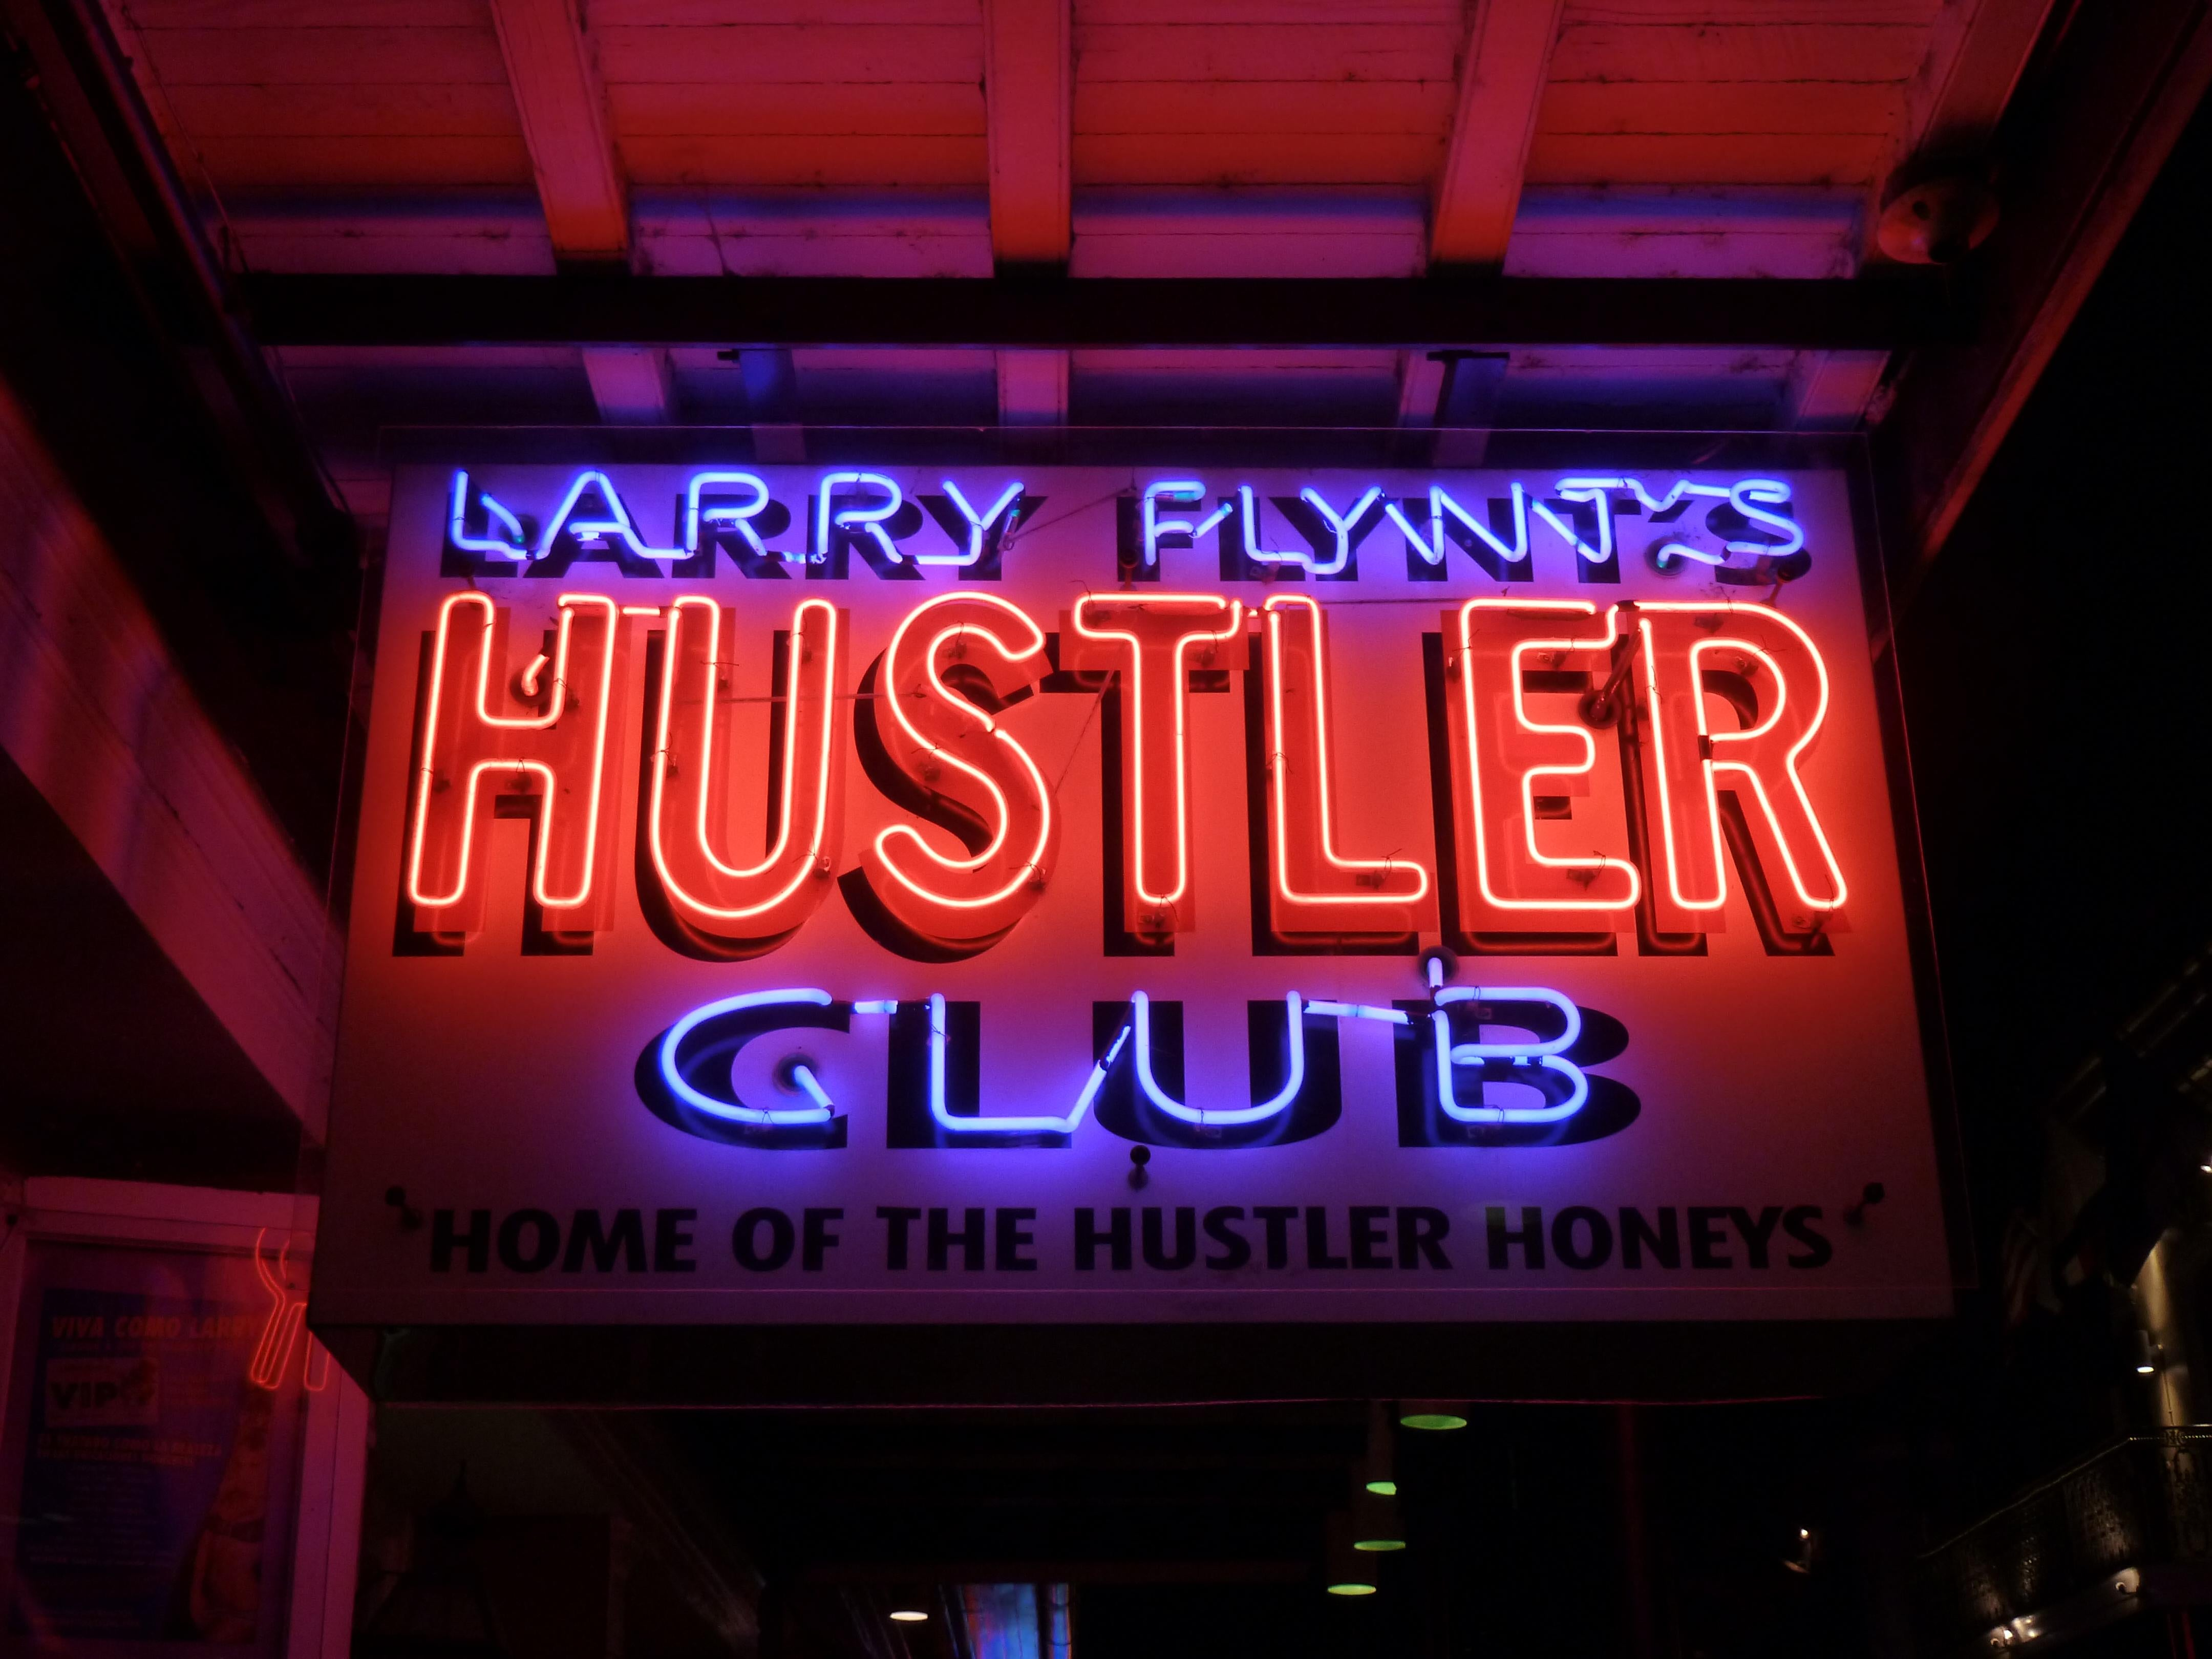 Clearly cost of admission for hustler clubs